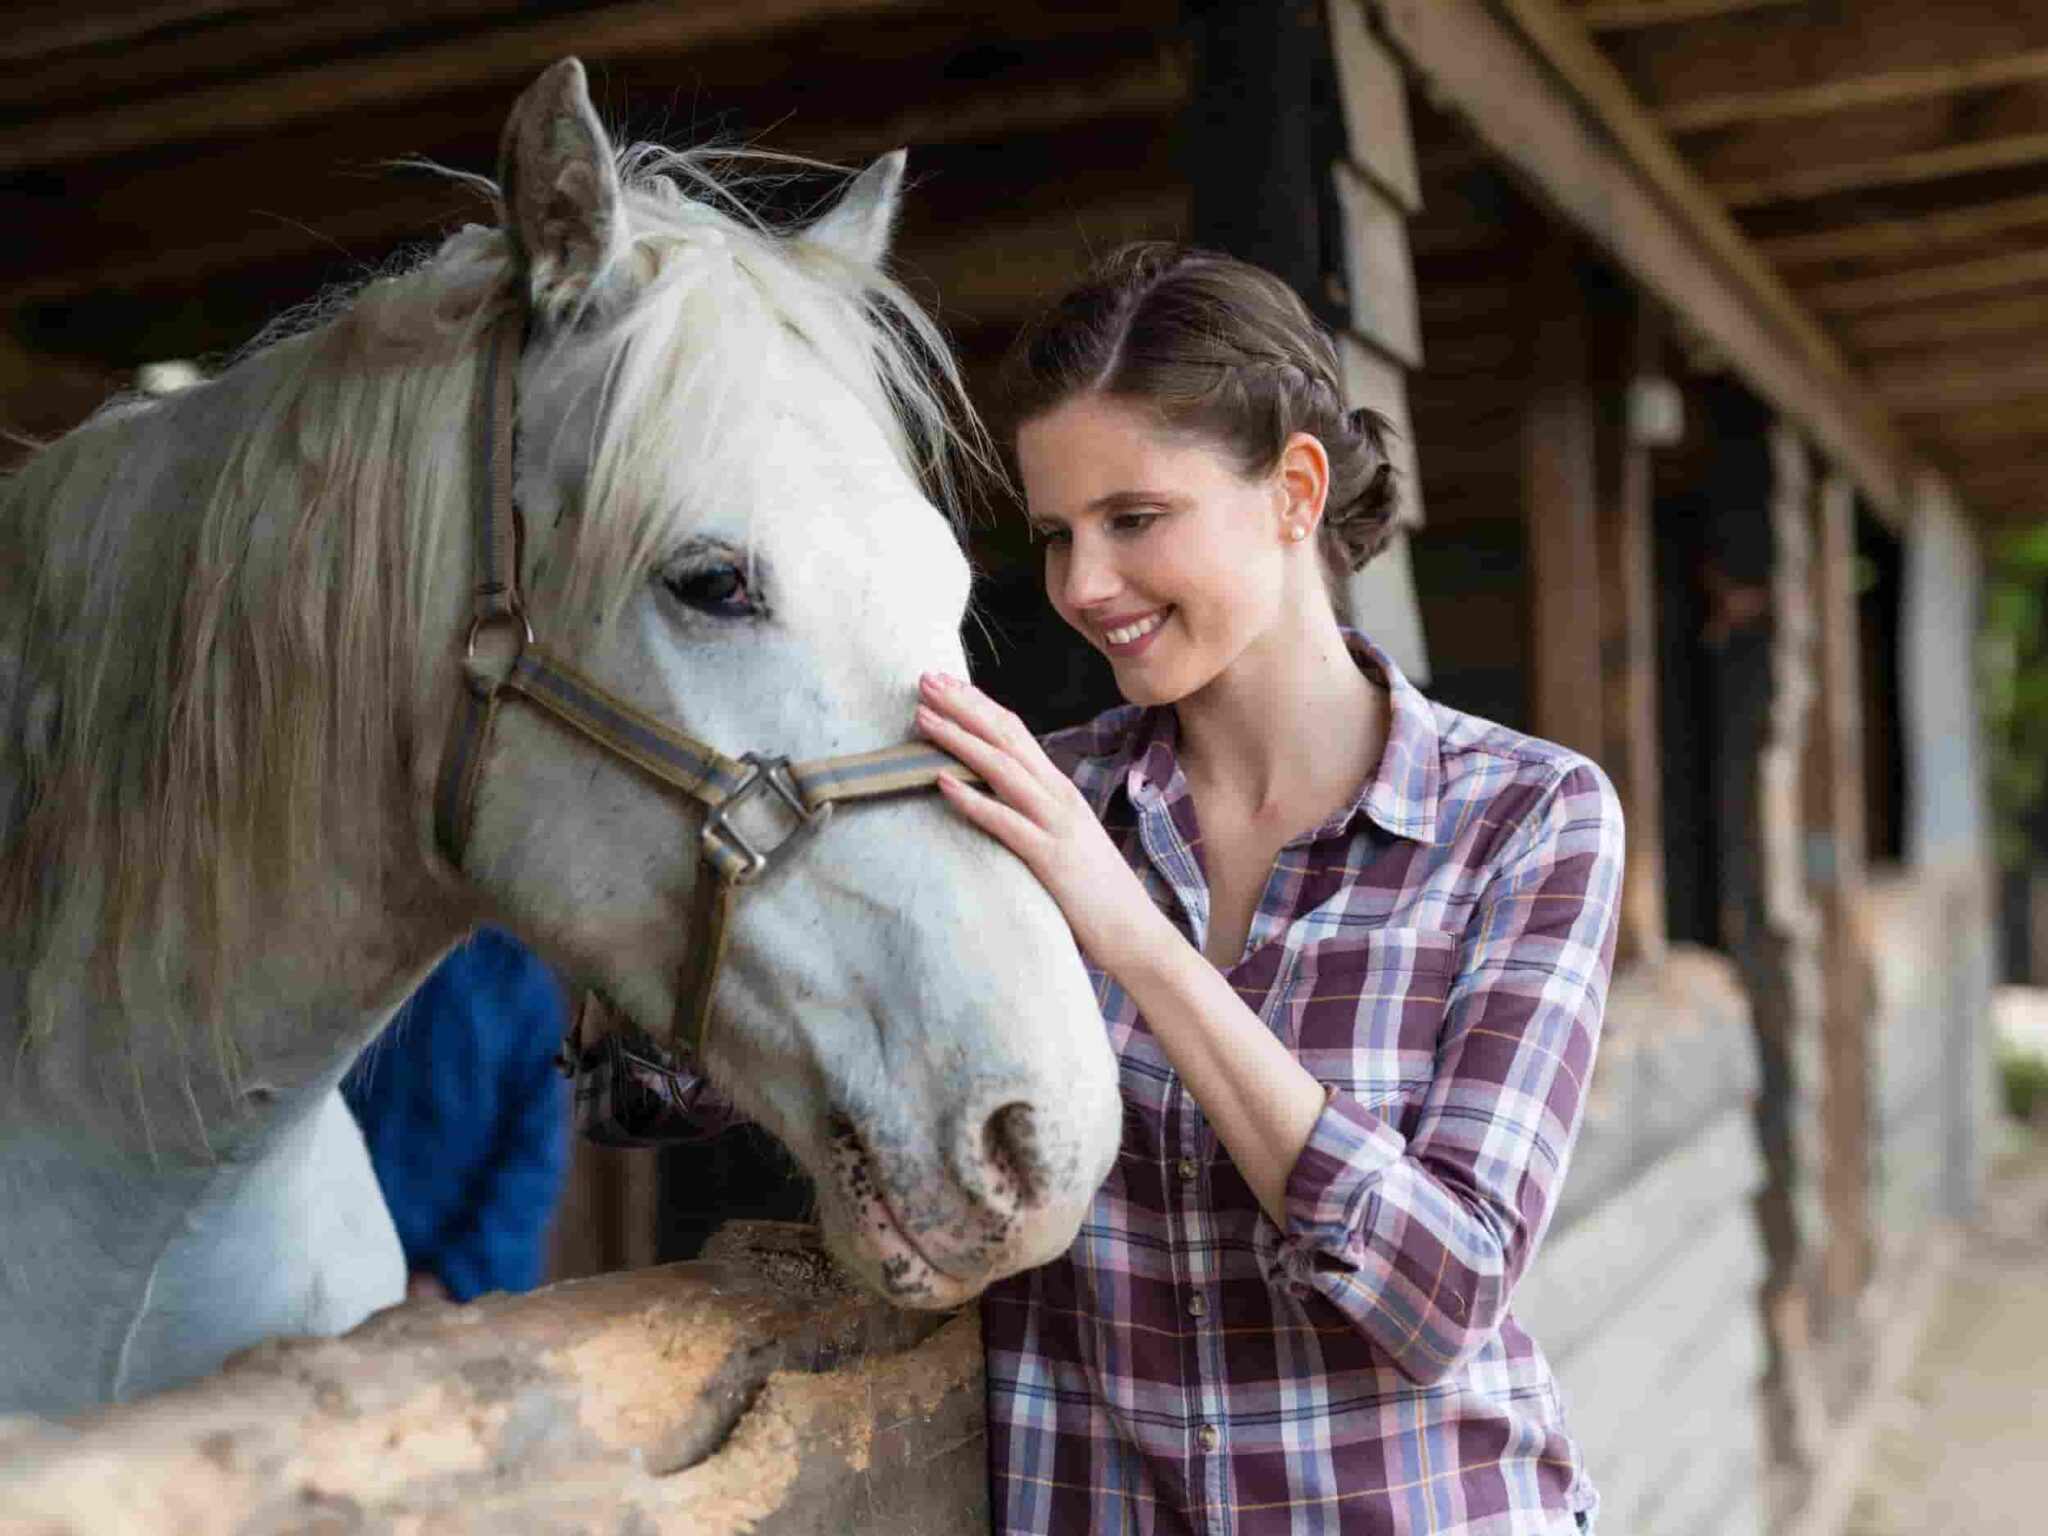 Horses Can Communicate With Humans, Say Scientists